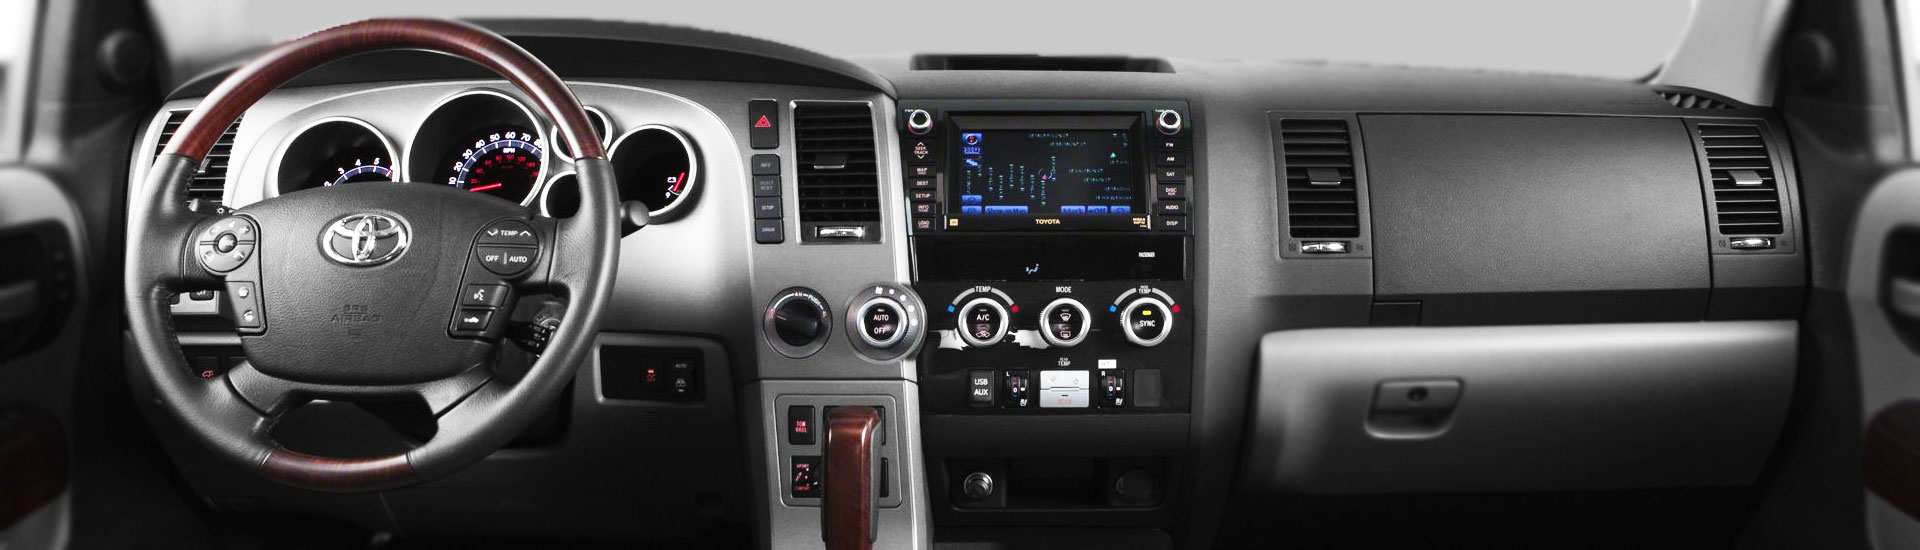 toyota sequoia dash kits custom toyota sequoia dash kit